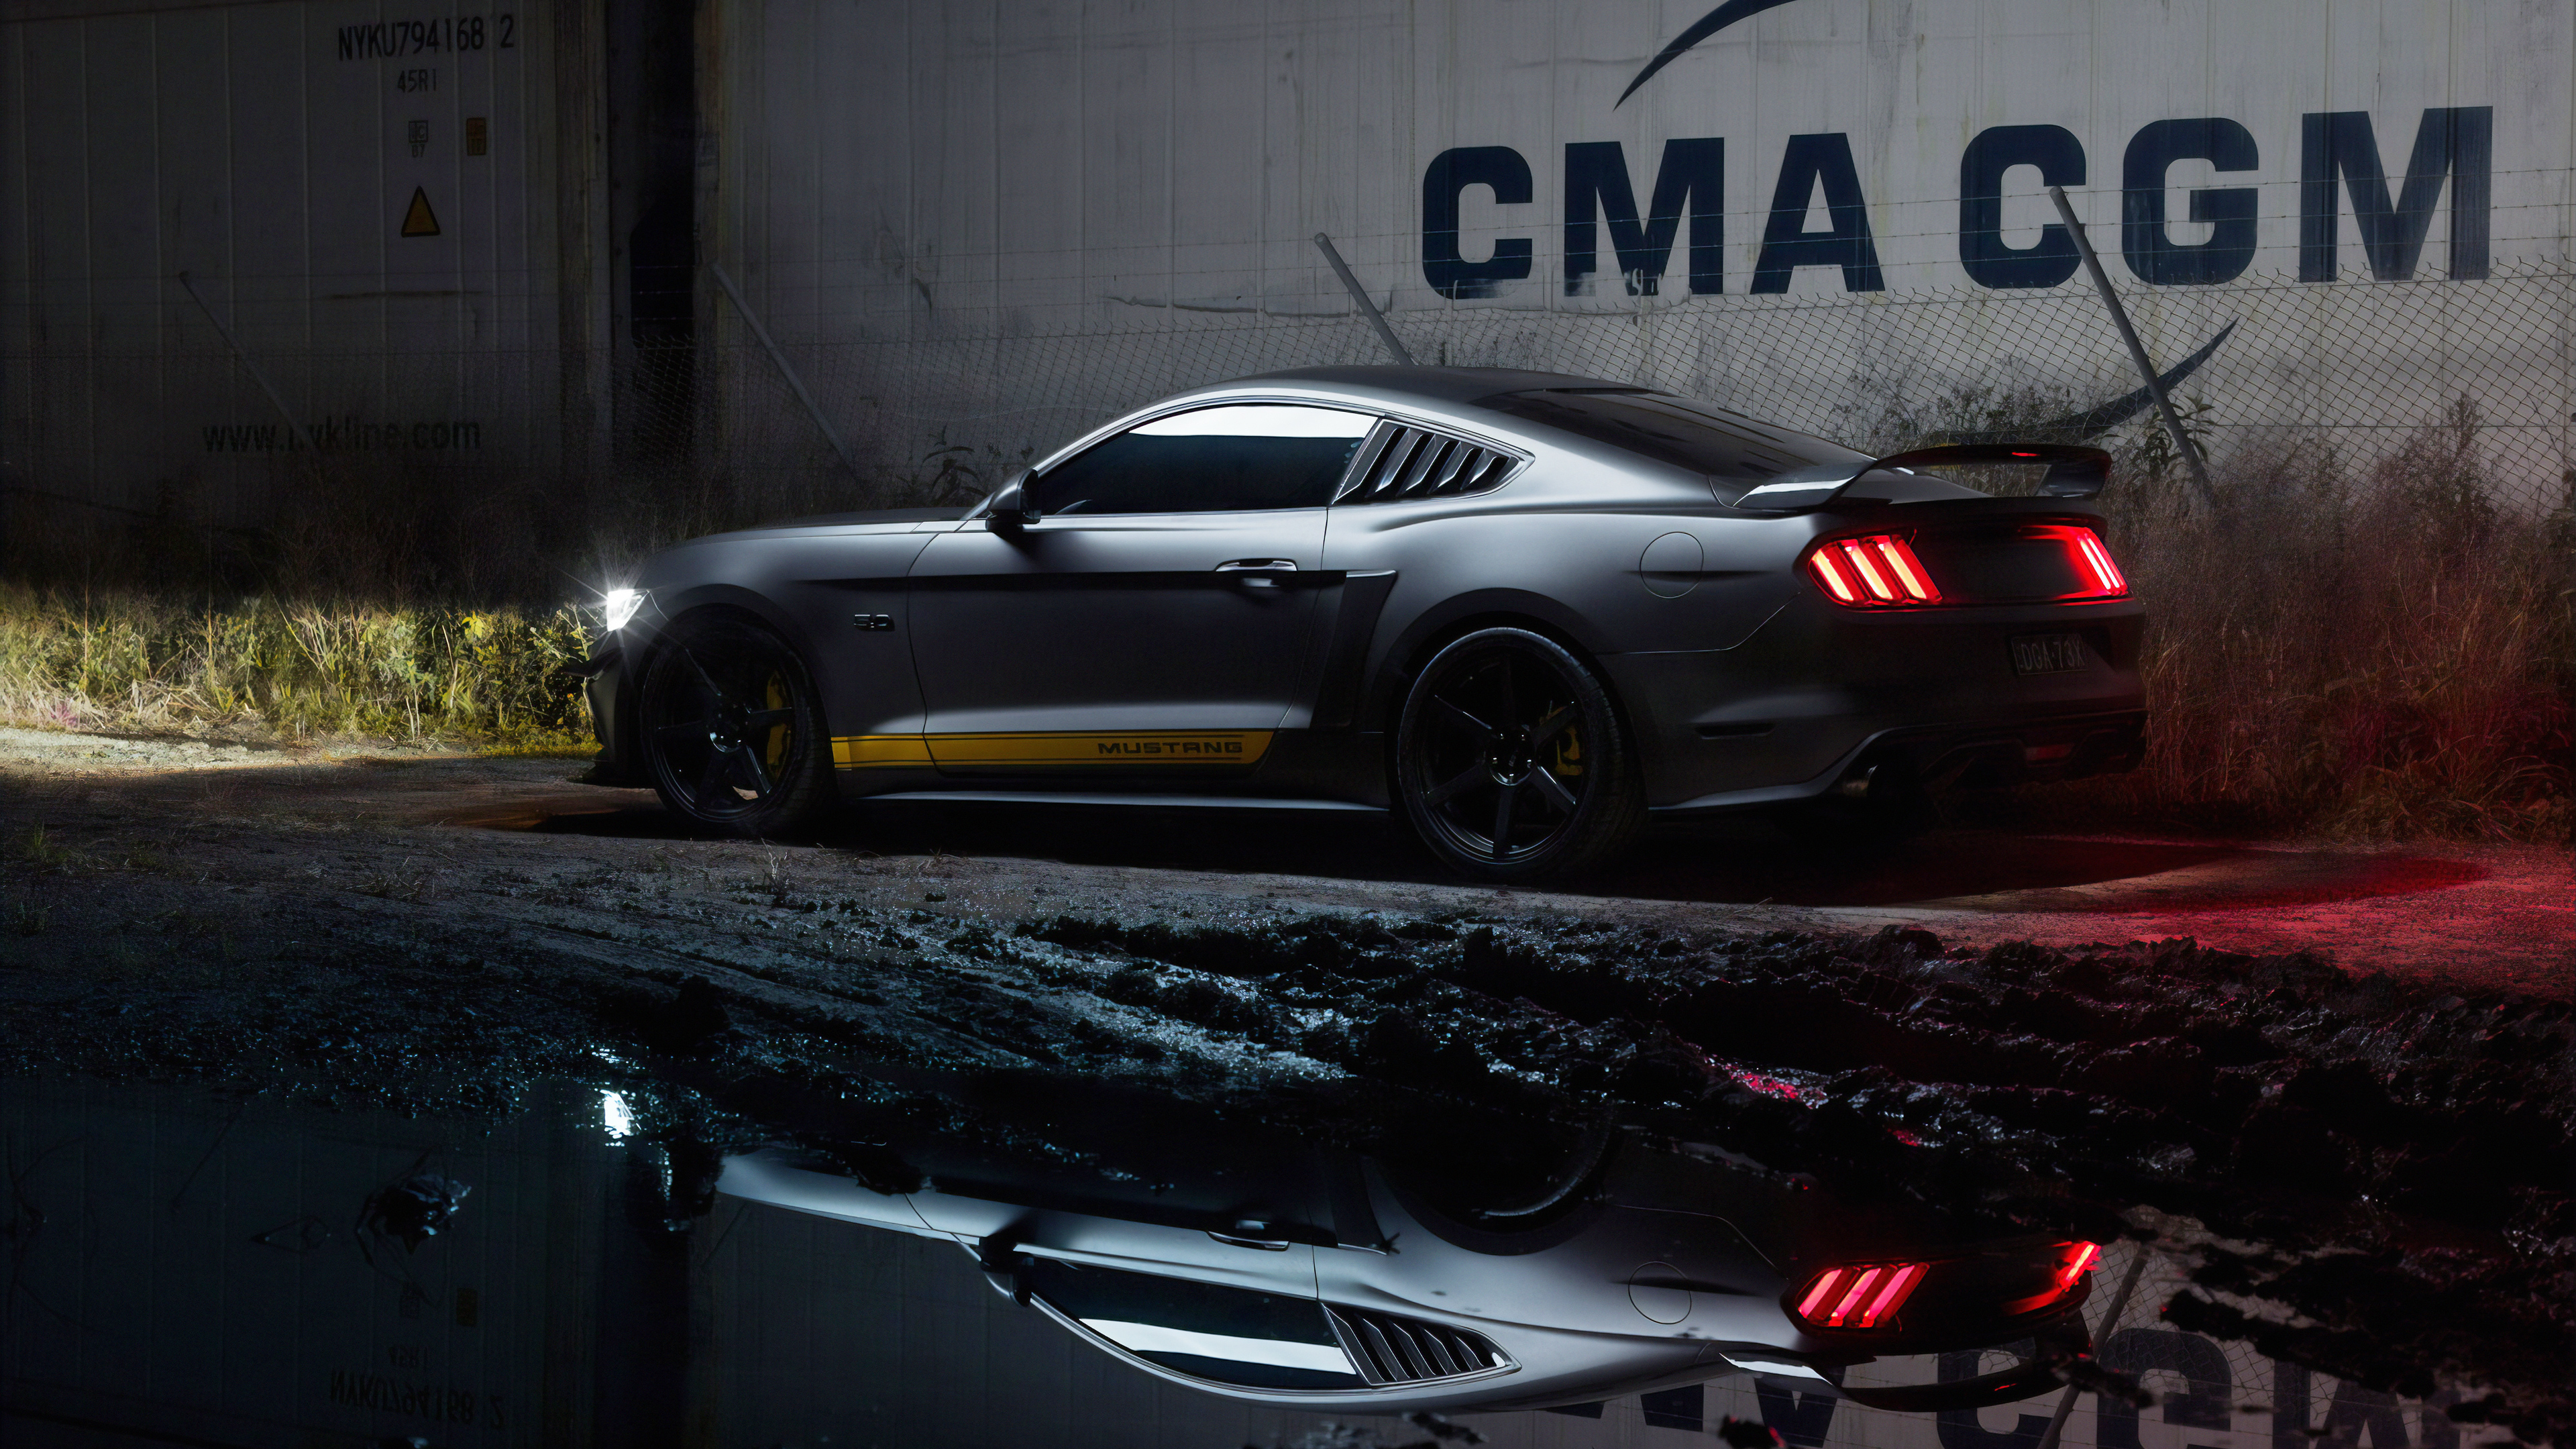 ford mustang in mud 1569188393 - Ford Mustang In Mud - hd-wallpapers, ford wallpapers, ford mustang wallpapers, cars wallpapers, behance wallpapers, 4k-wallpapers, 2019 cars wallpapers